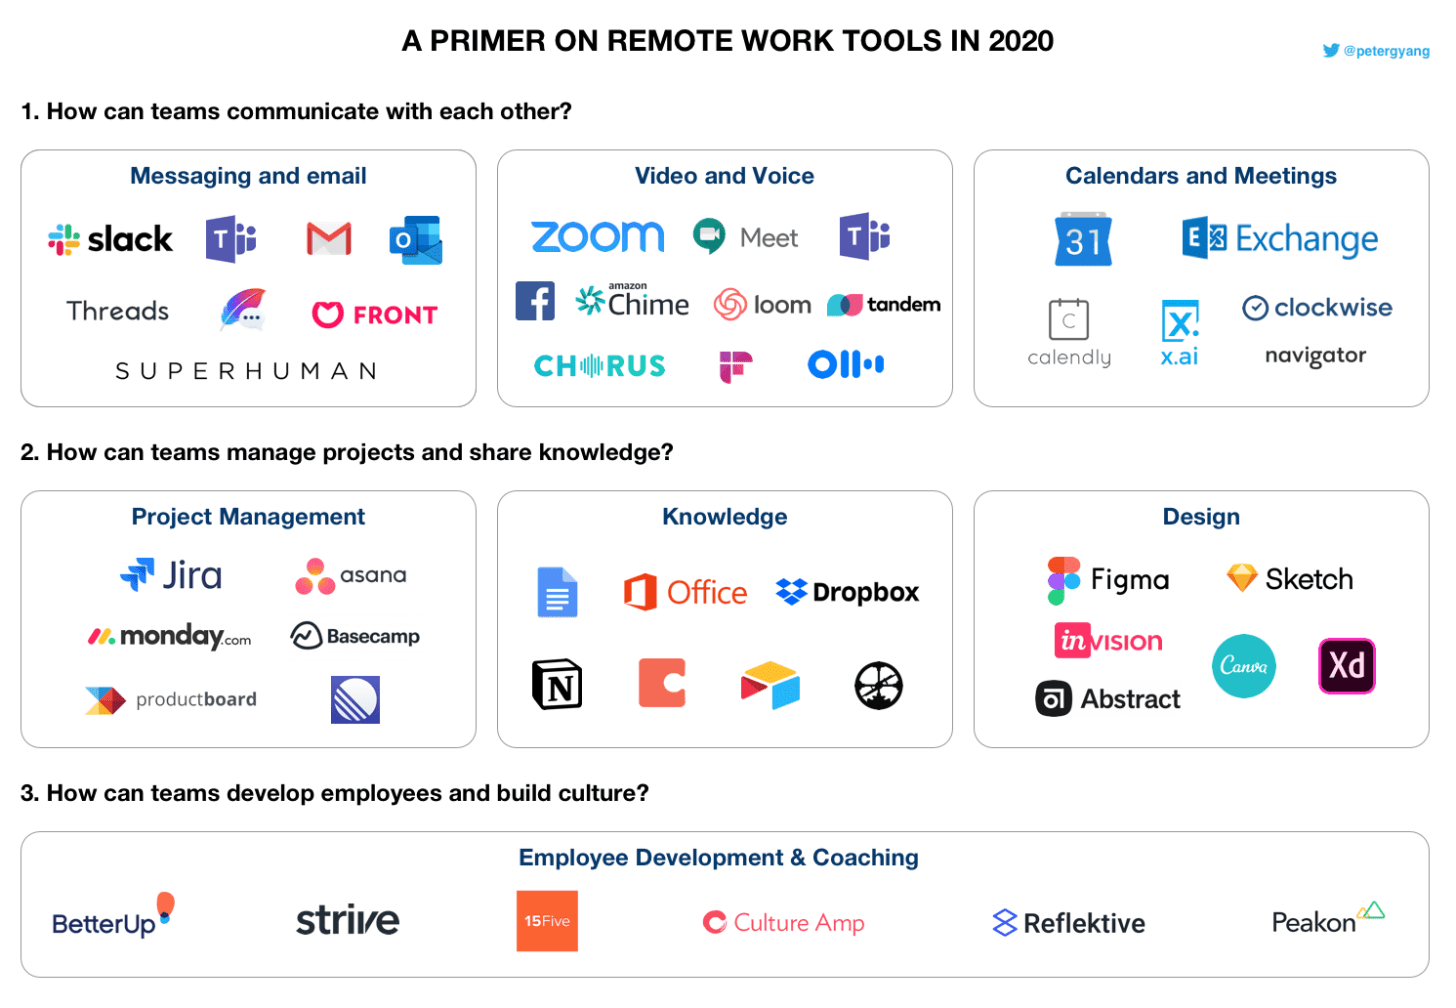 Remote working tools organized by category